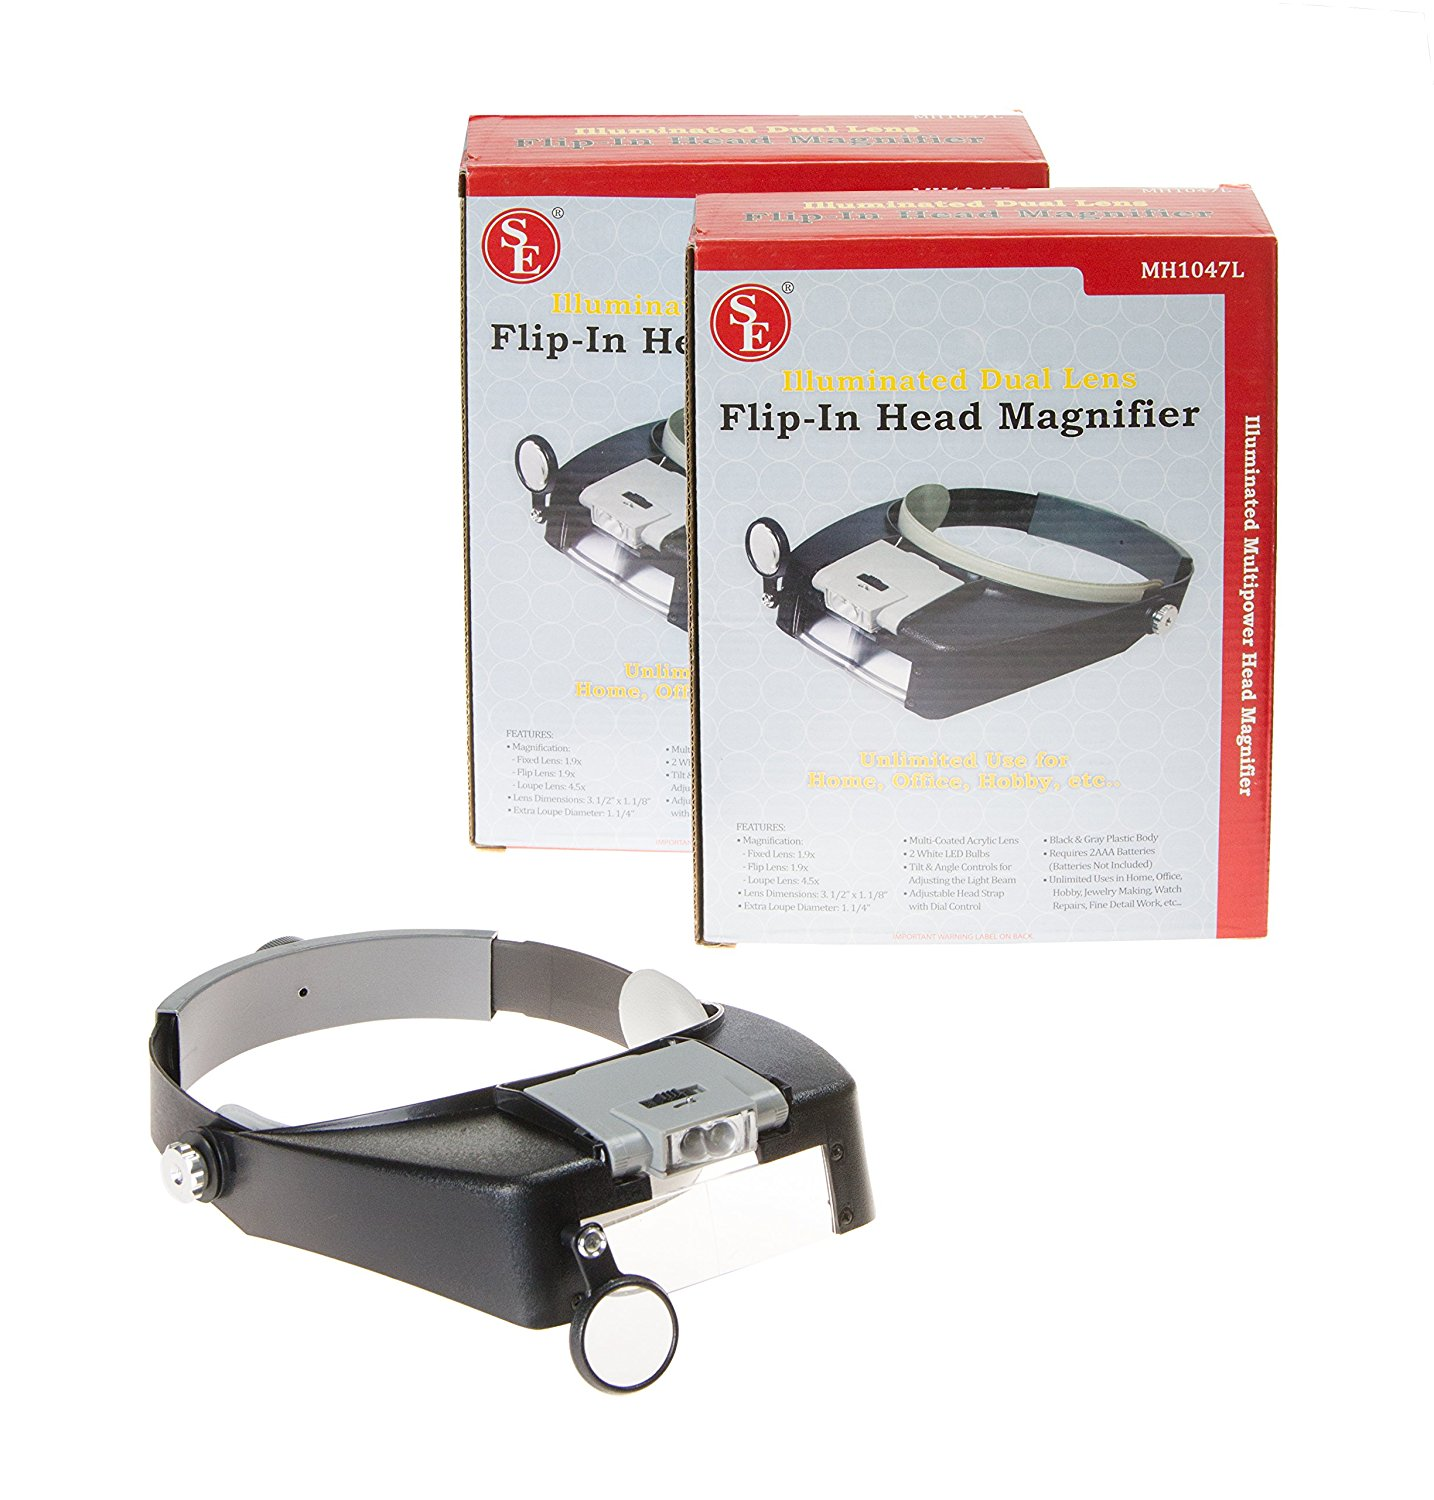 SE MH1047L-2 Illuminated Dual Lens Flip-in Head Magnifier (Pack of 2)